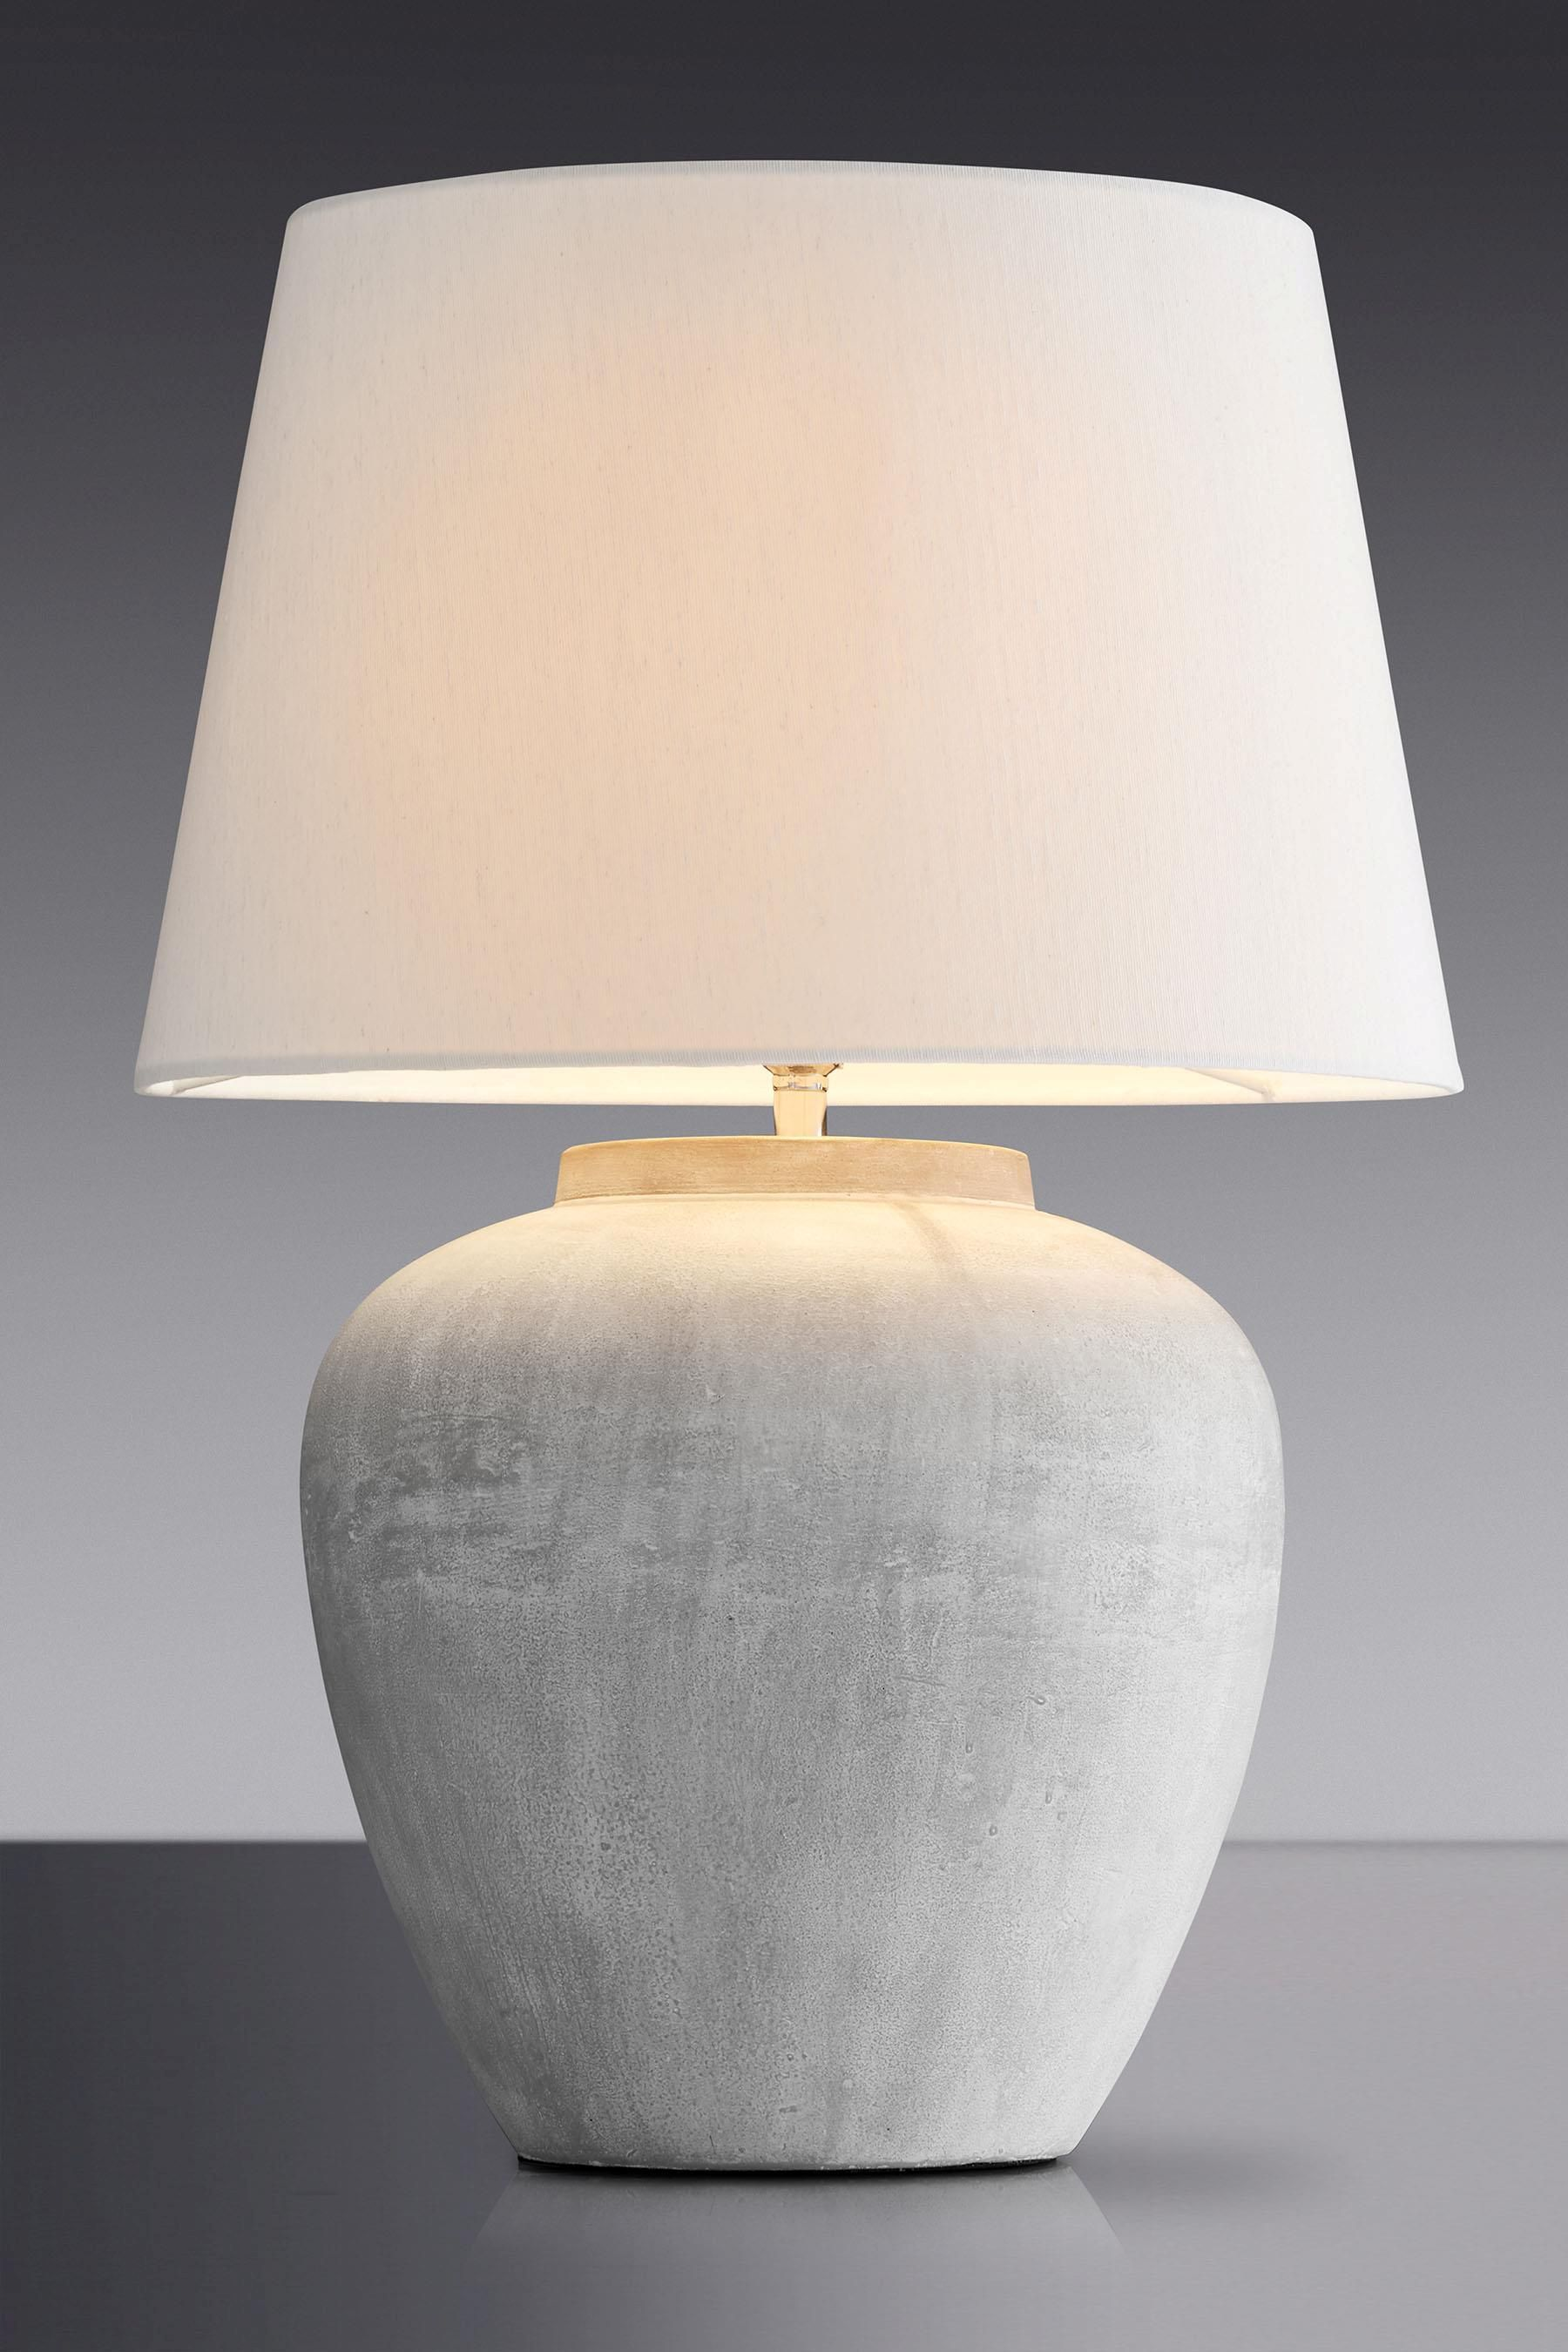 Buy Lydford Table Lamp From The Next Uk Online Shop Large Table Lamps Table Lamps Uk Ceramic Table Lamps